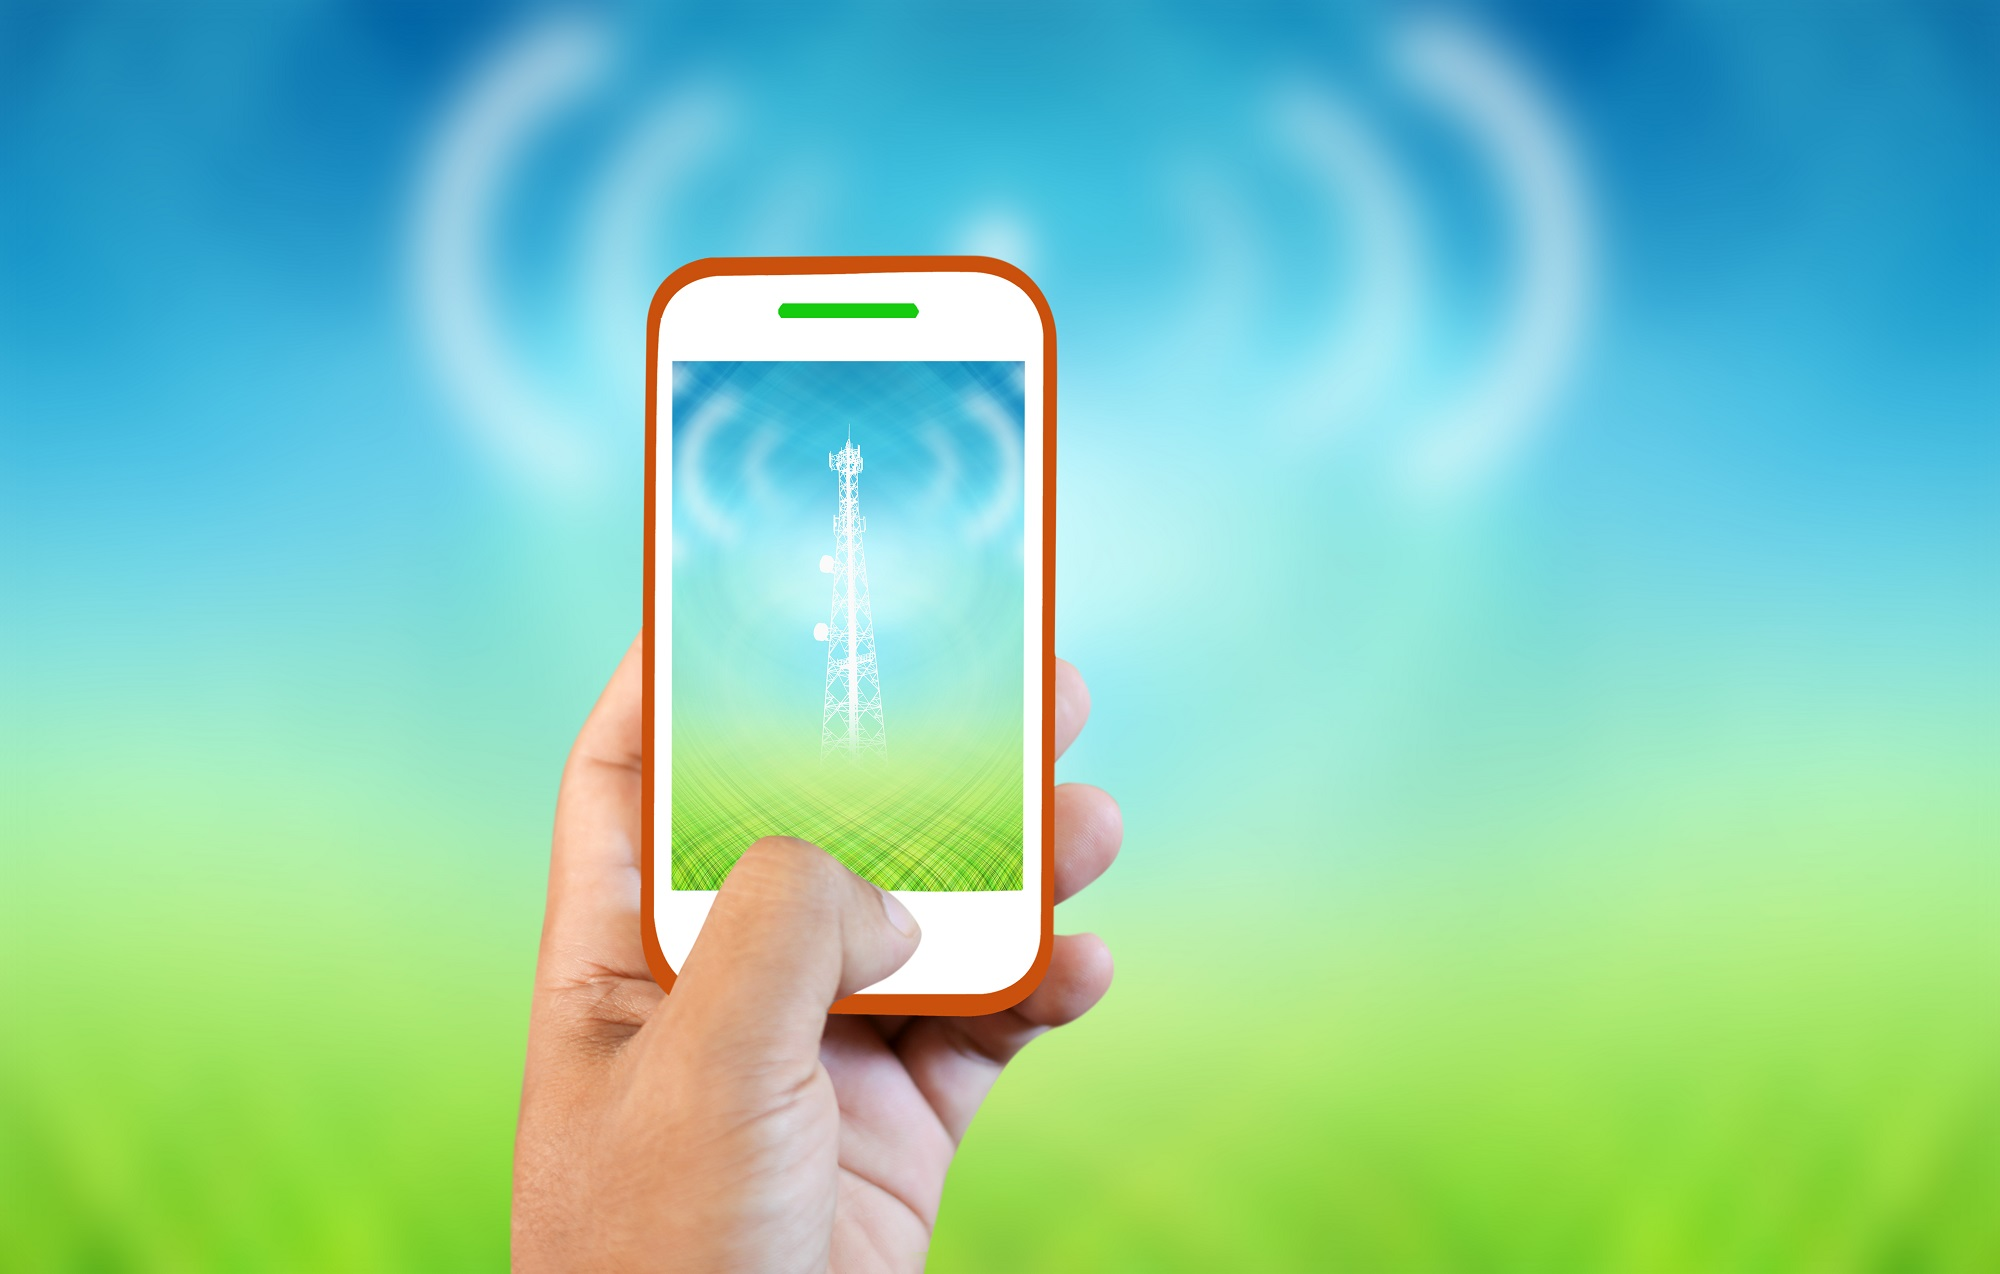 Boosting the cell phone signal